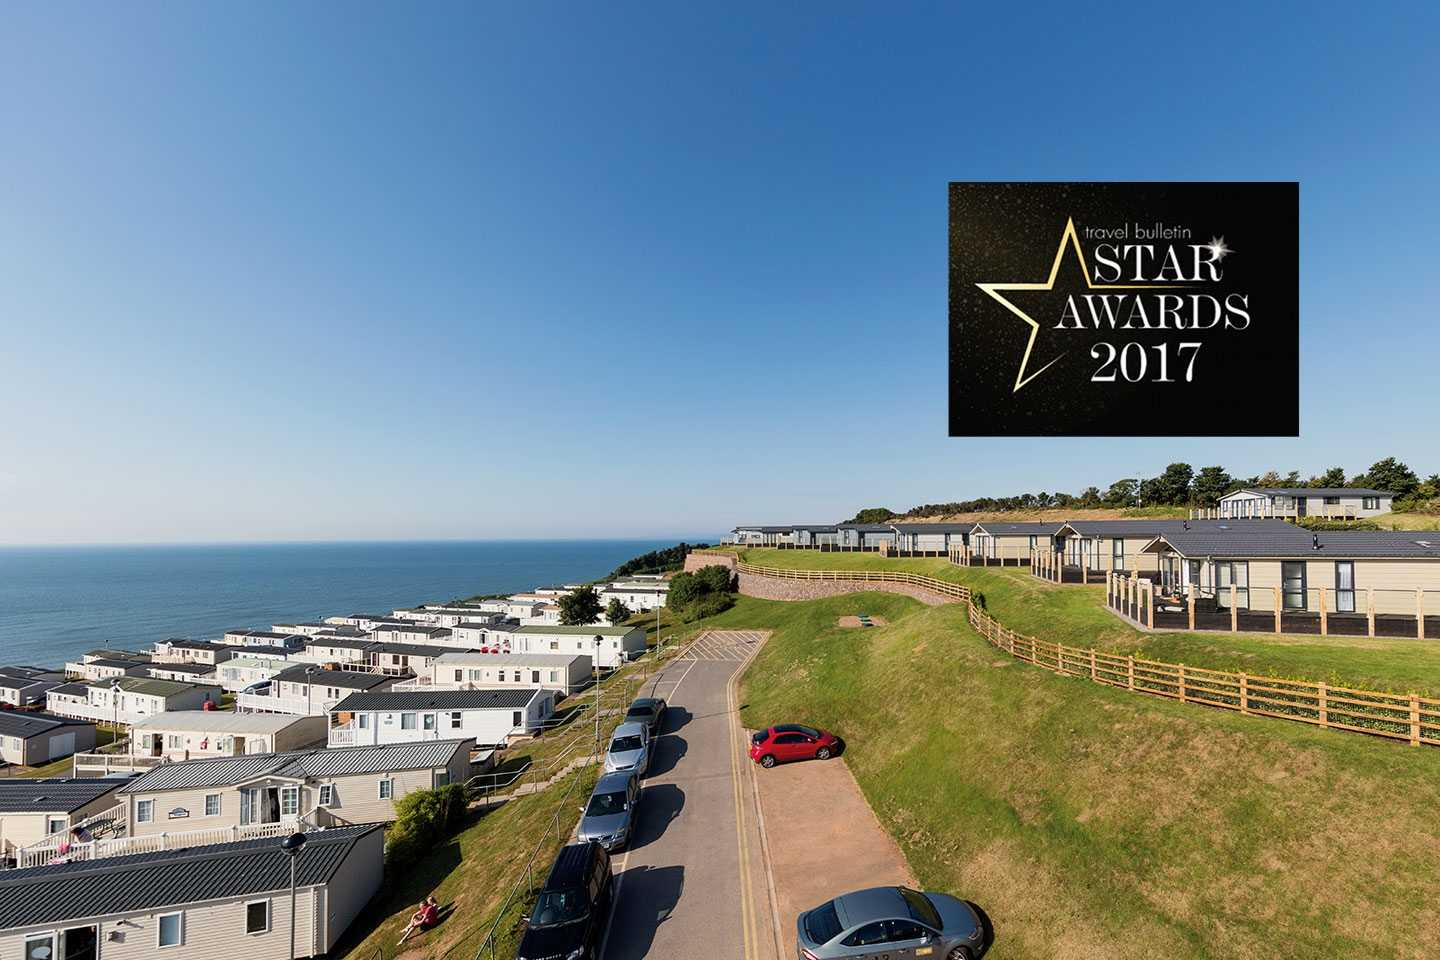 Travel Bulletin Star Awards 2017 logo